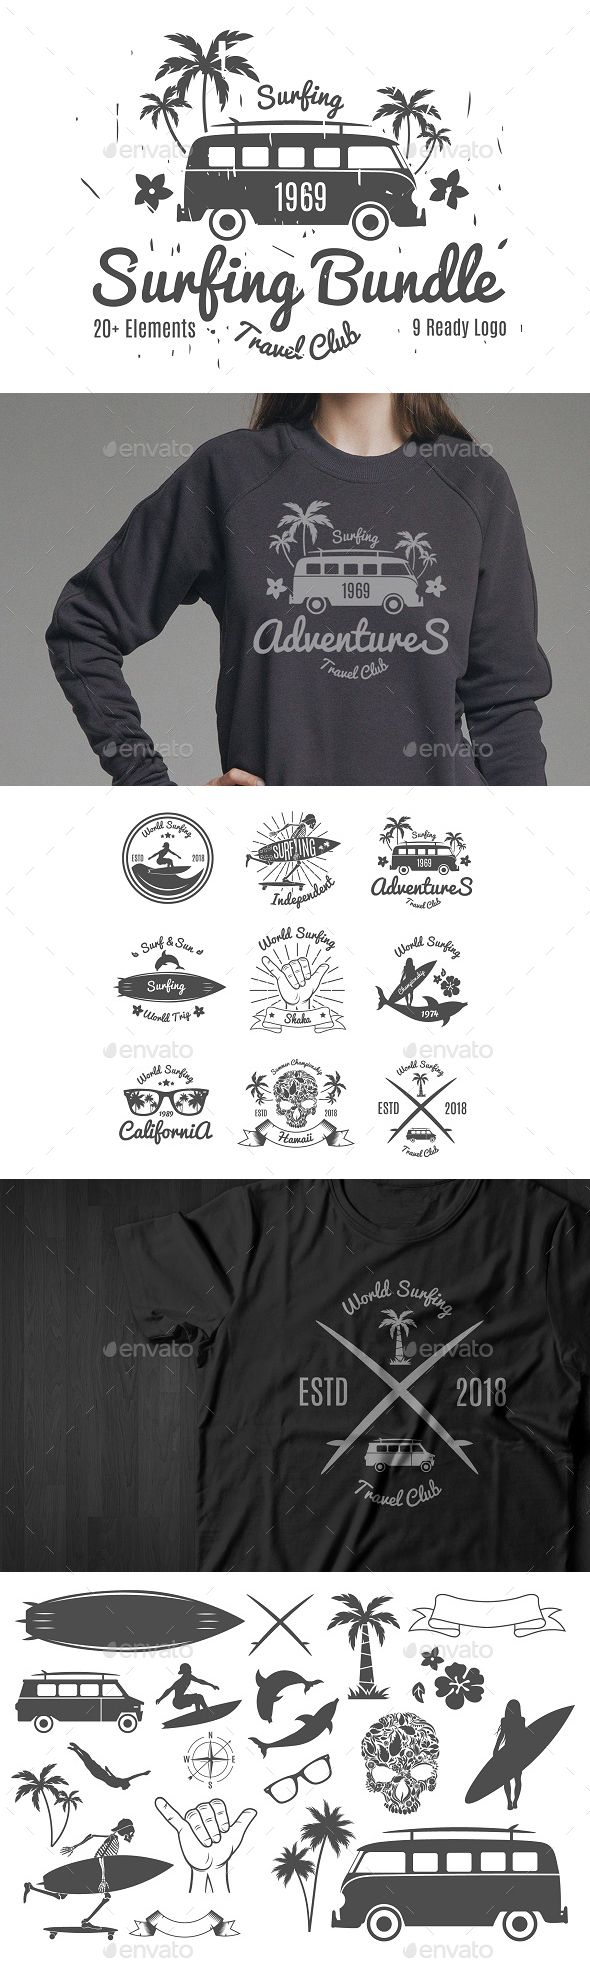 Surfing Pack - Photoshop PSD, Vector EPS